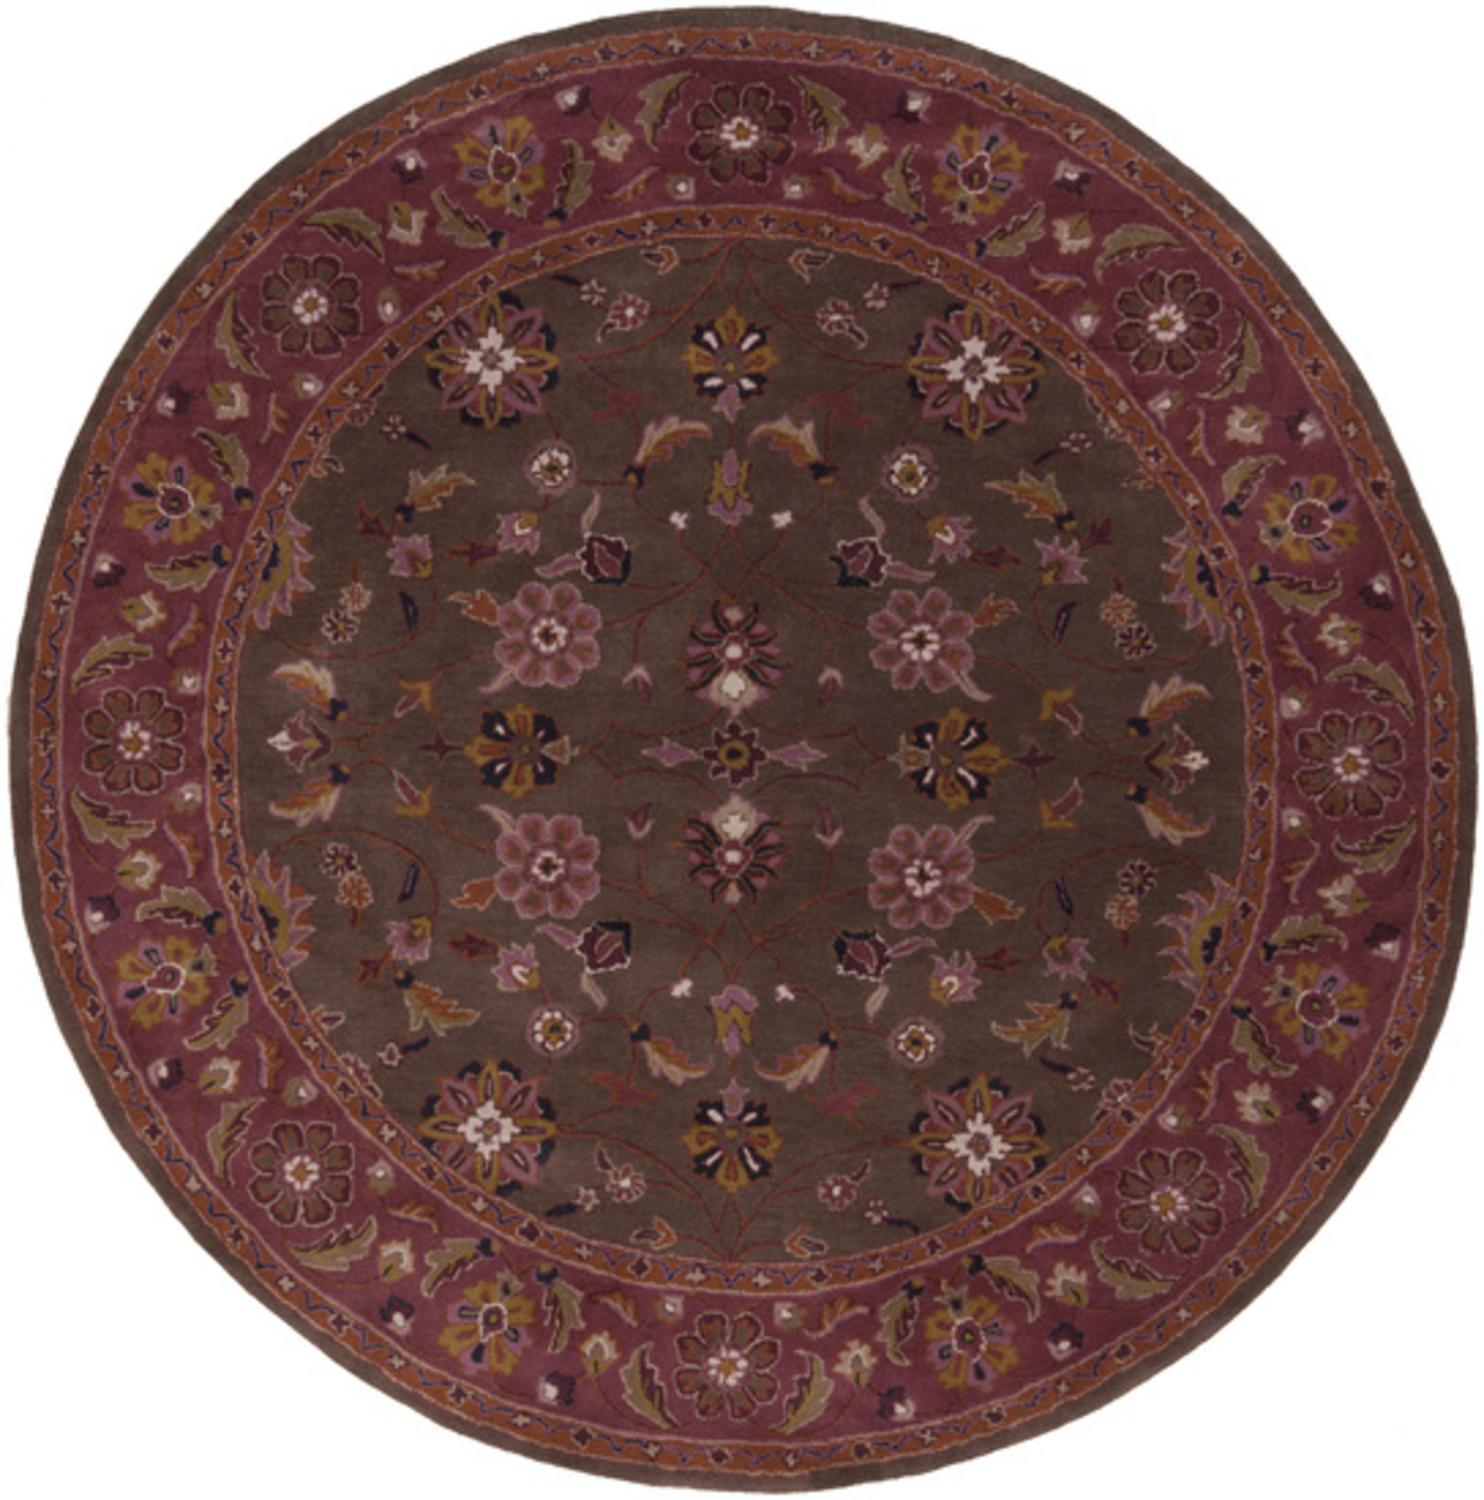 8' Protipo Floral Chocolate Brown and Violet Quartz Round Hand Tufted Wool Area Throw Rug